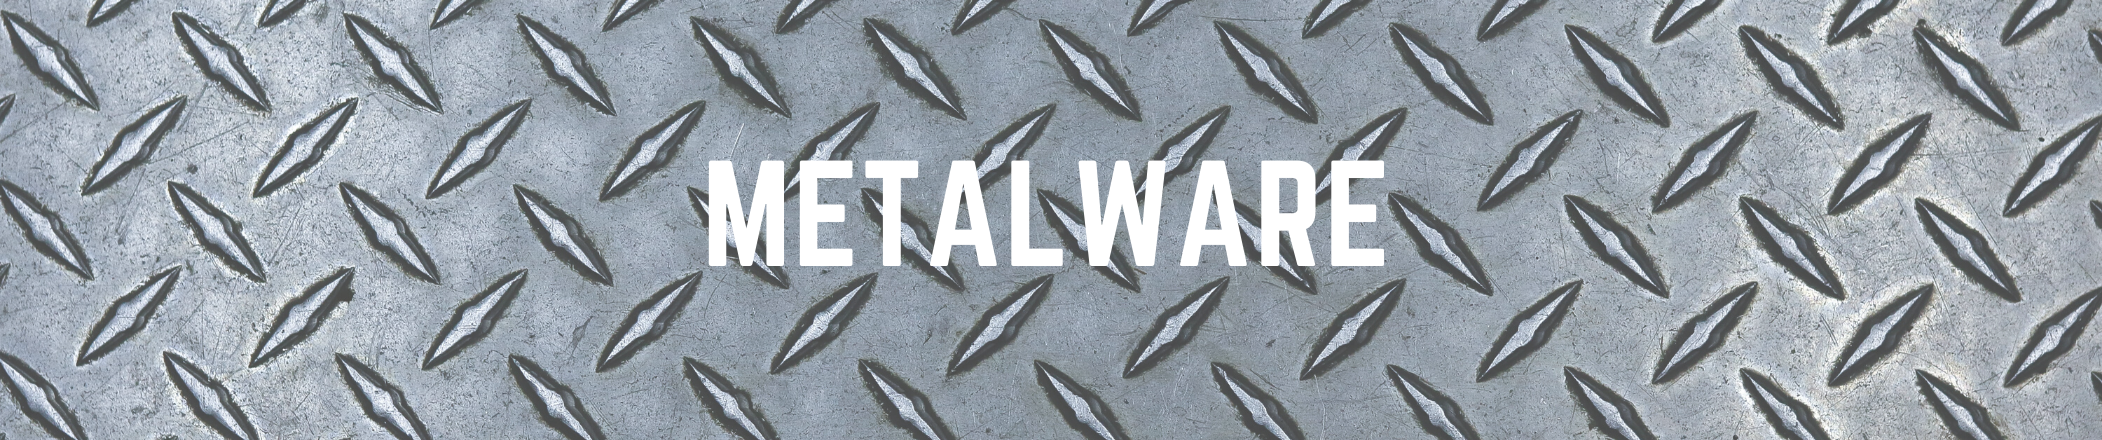 Metalware text with image background